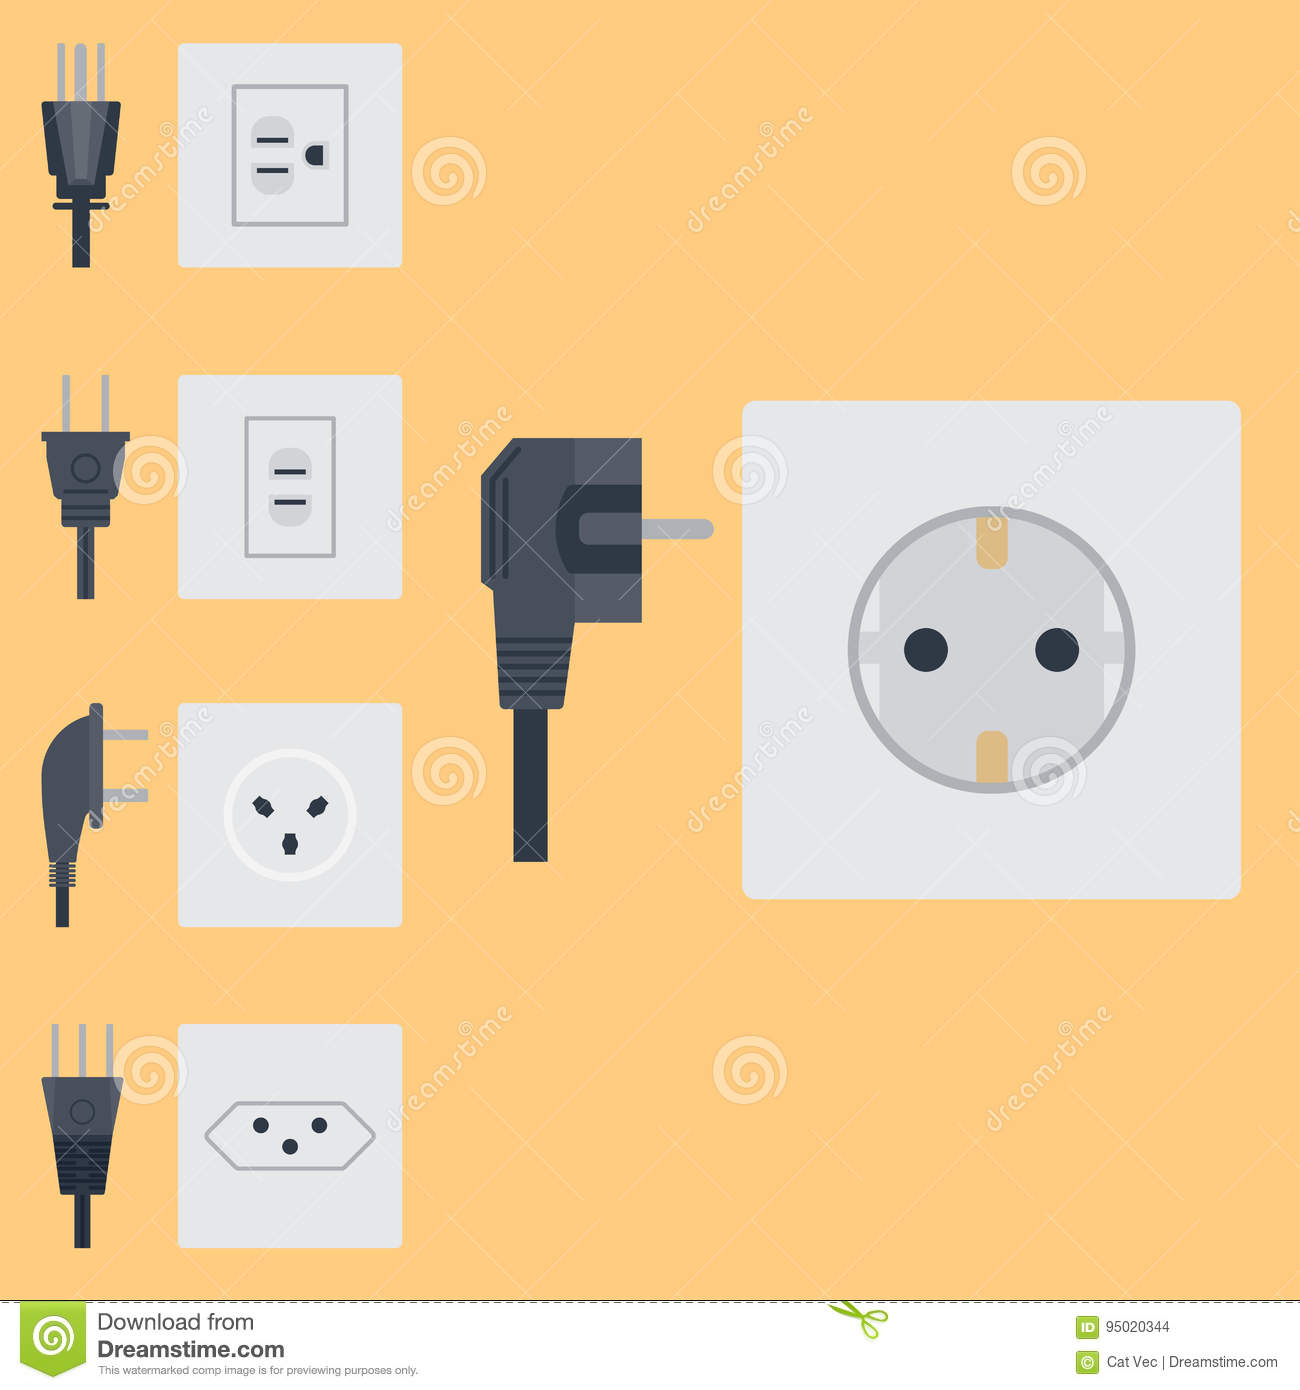 Electric Outlet Vector Illustration Energy Socket Electrical Outlets Wiring A Plug Plugs European Appliance Interior Icon